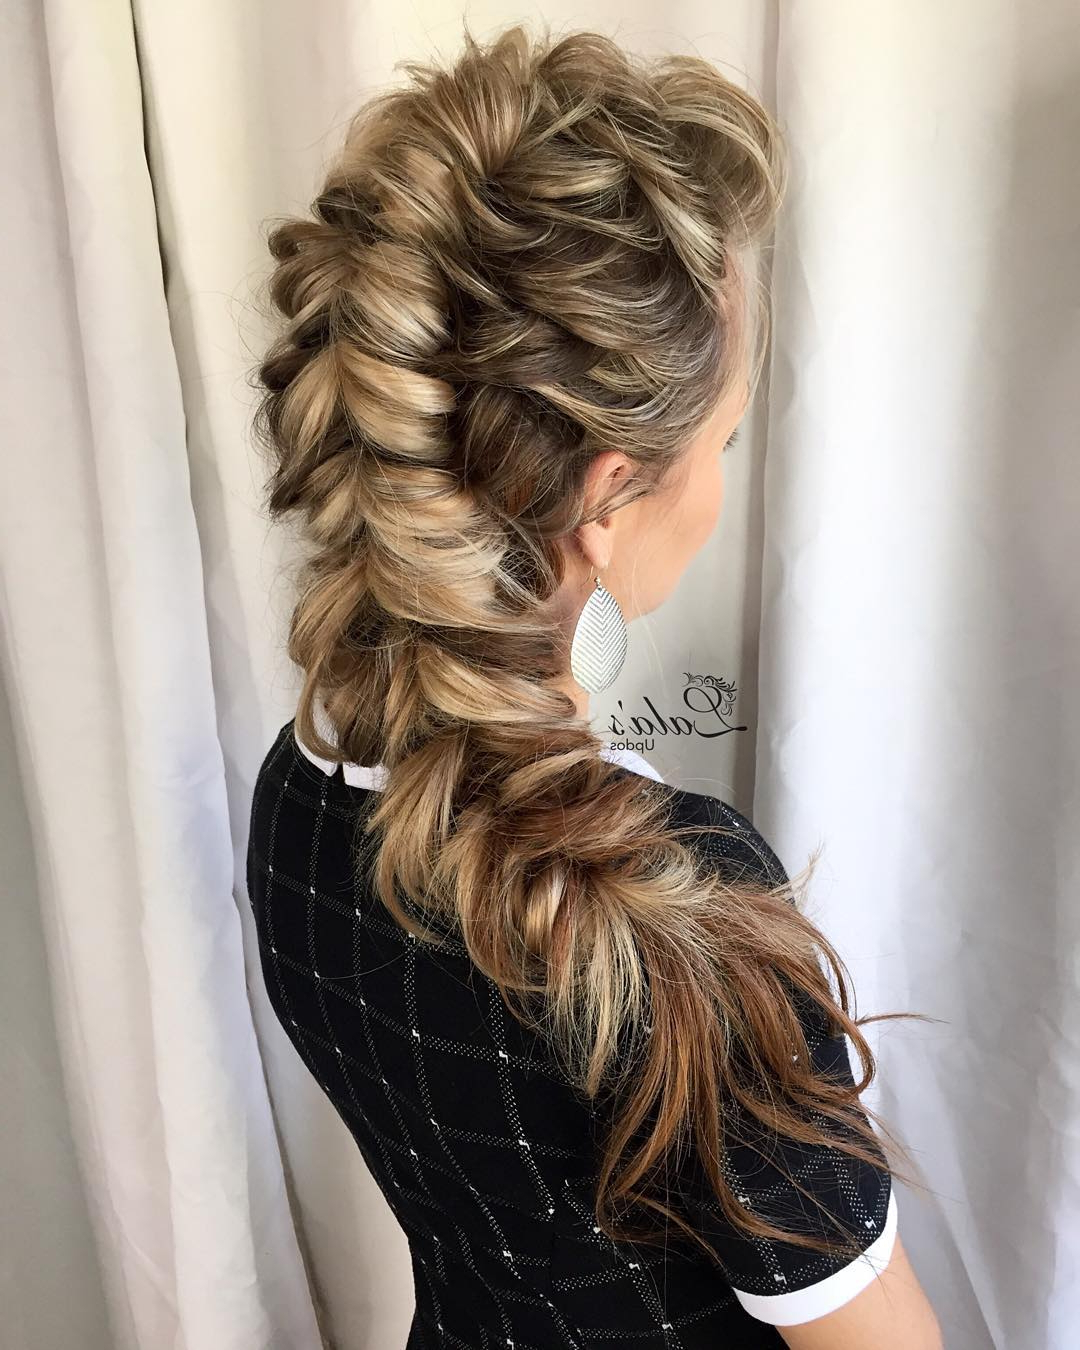 20 Ways To Style A Pull Through Braid (2019 Definitive Guide) Pertaining To Most Recent Tangled Braided Crown Prom Hairstyles (View 1 of 20)